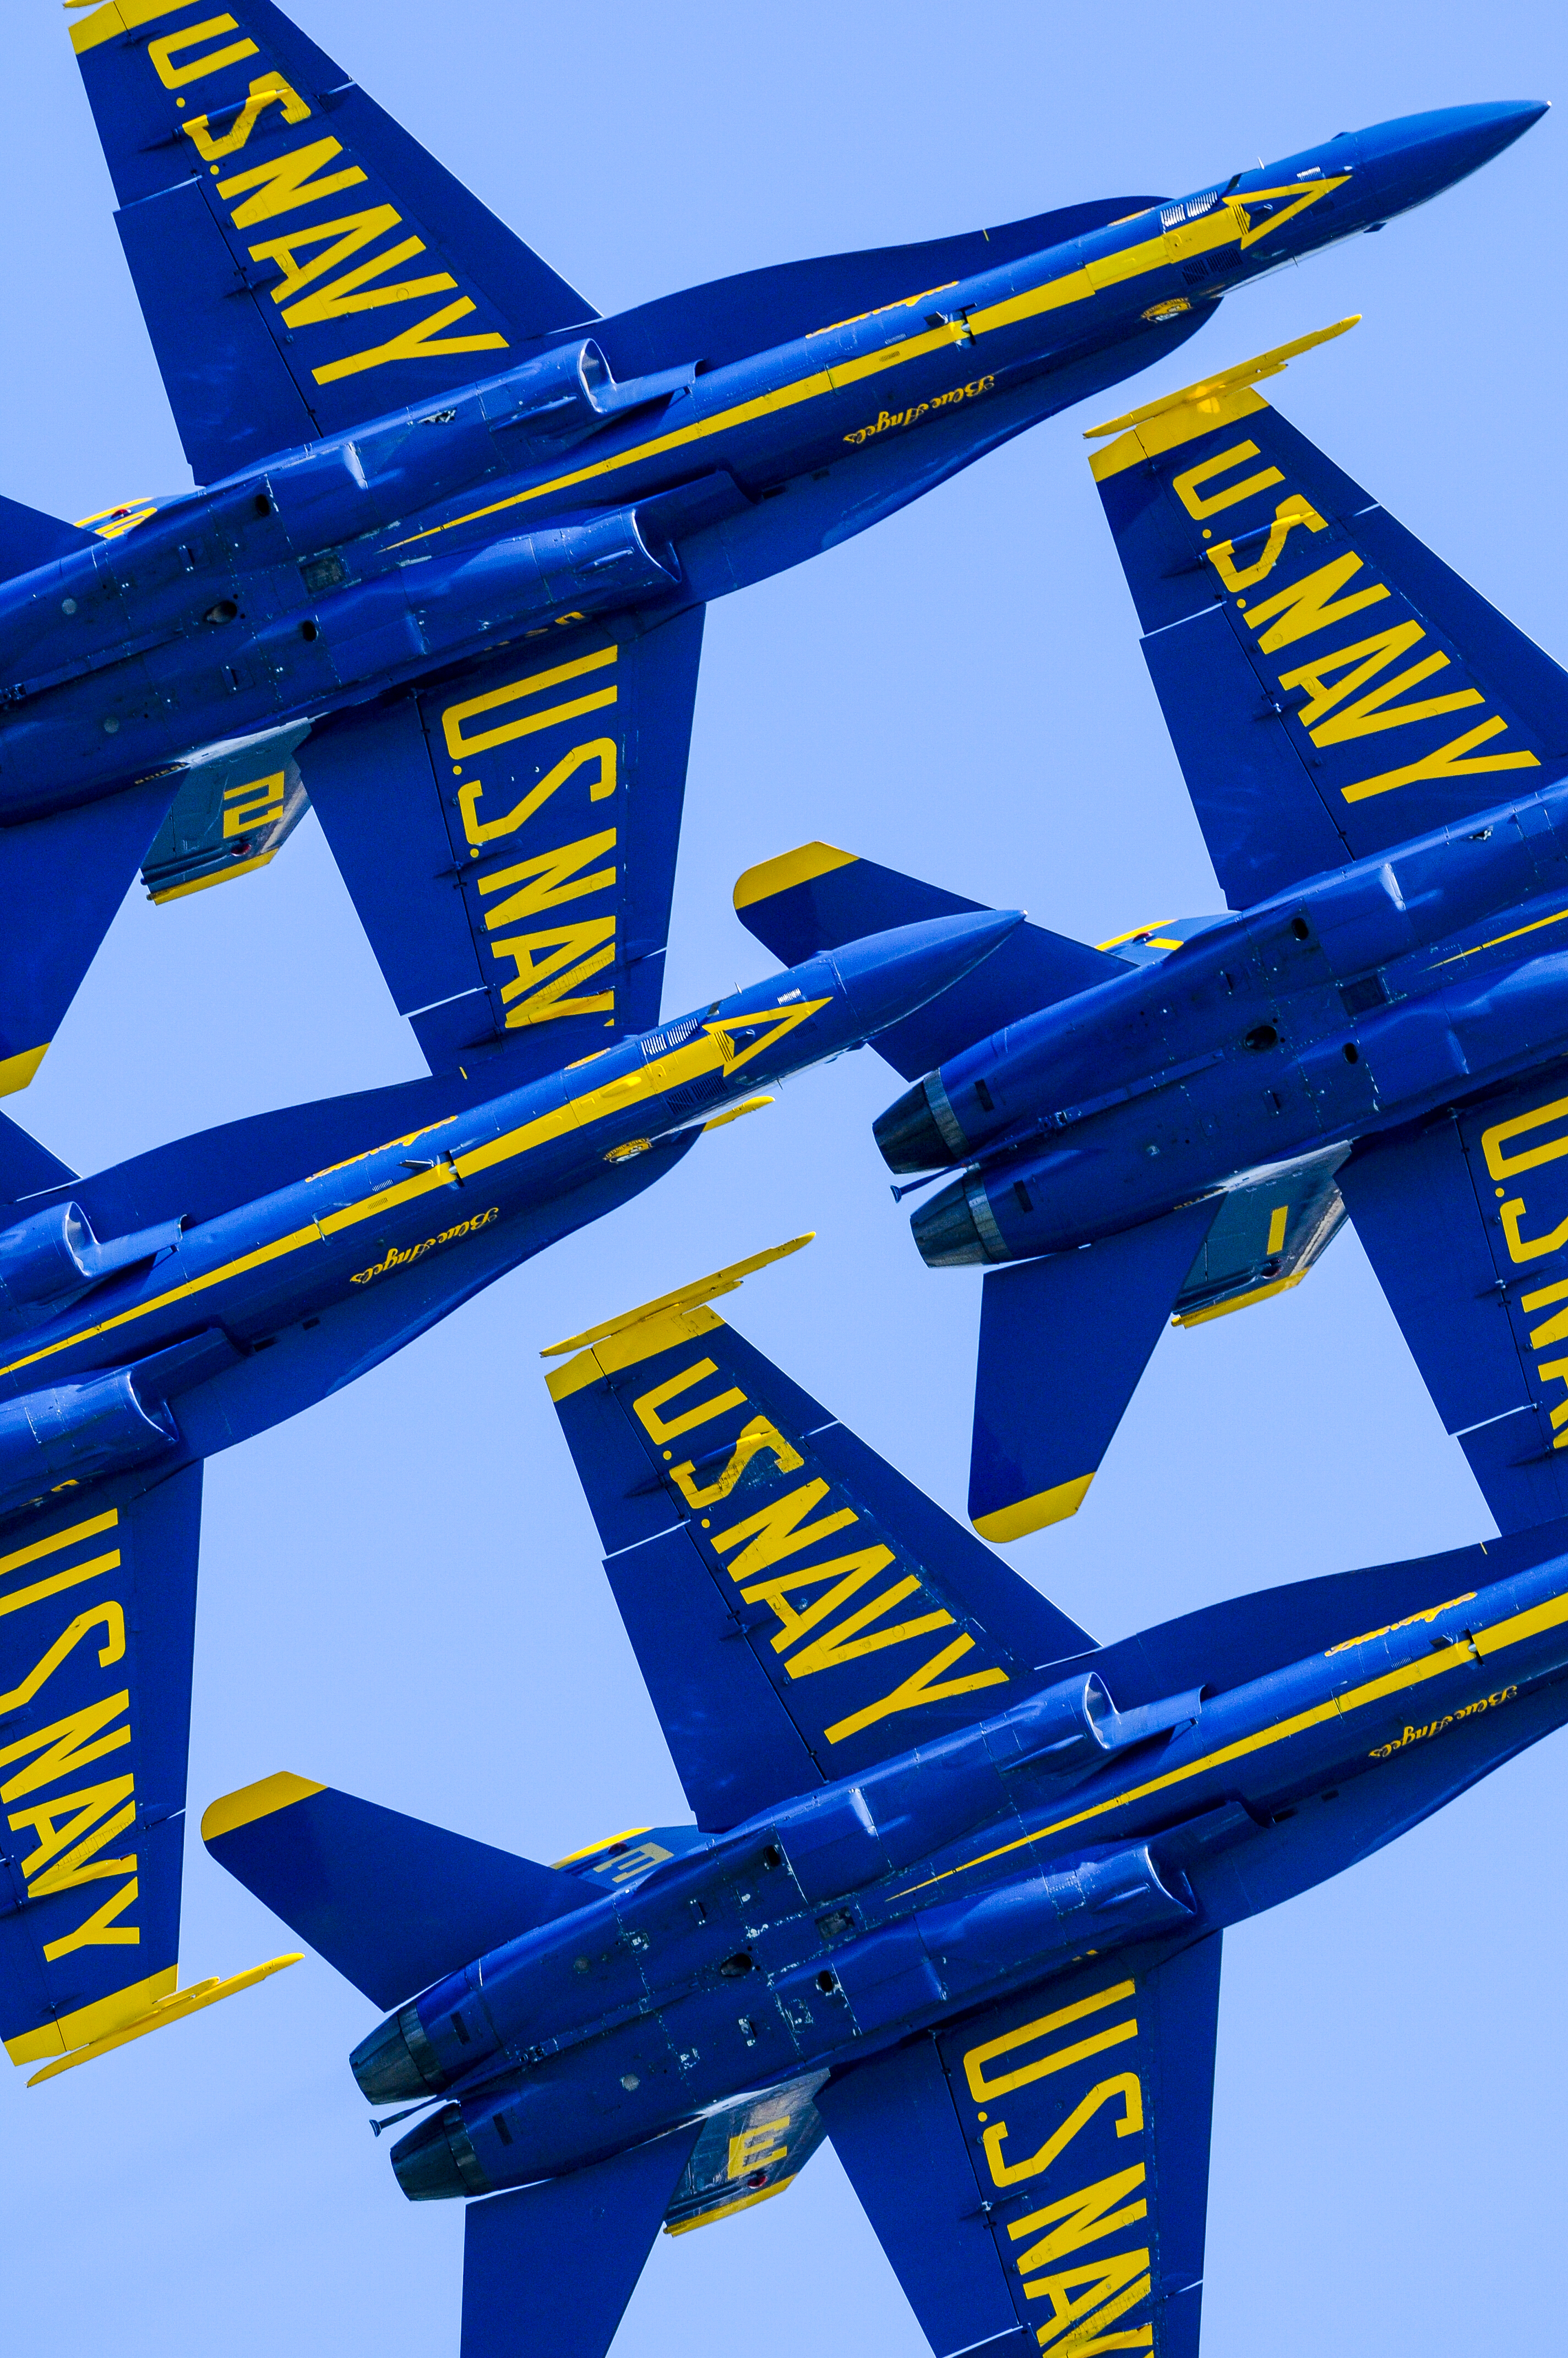 24 Tips on How to Photograph Air Shows | B&H Explora